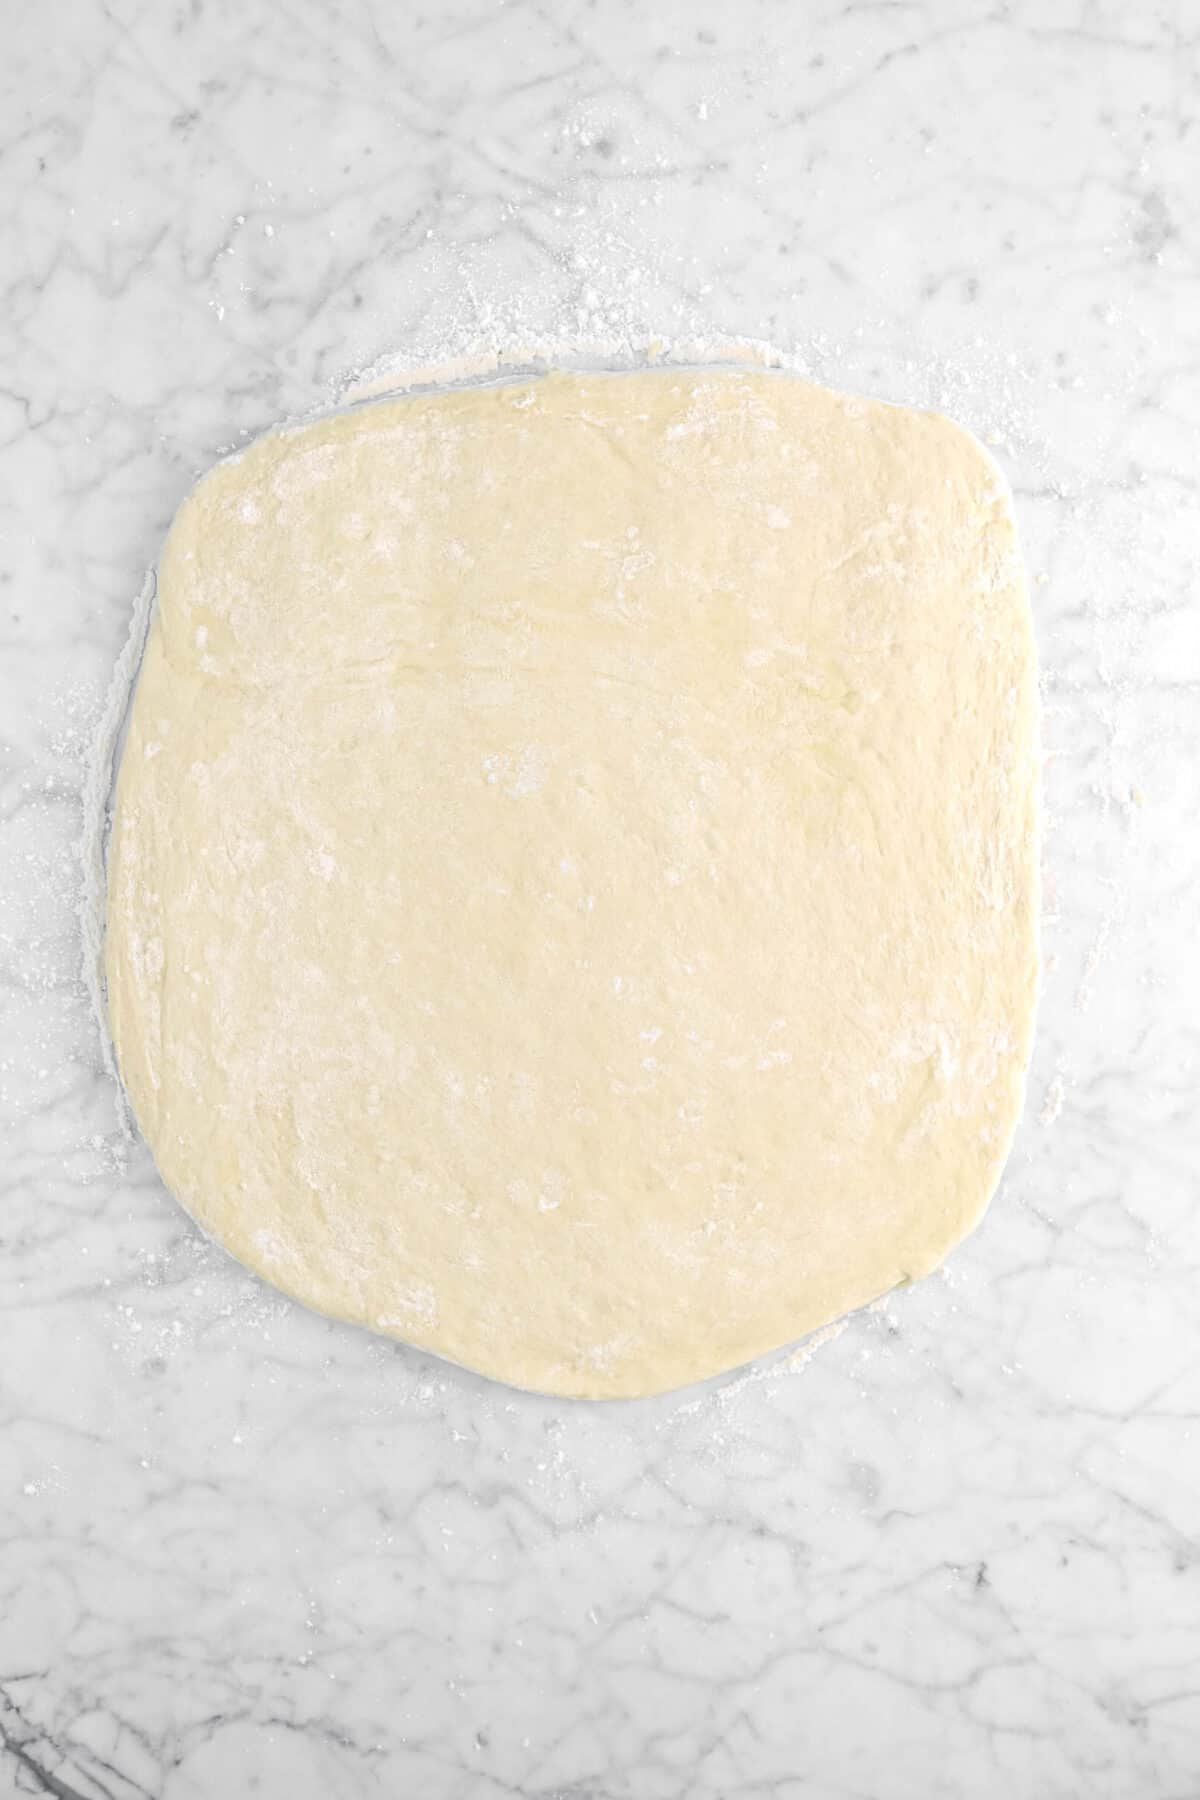 dough rolled out on marble counter